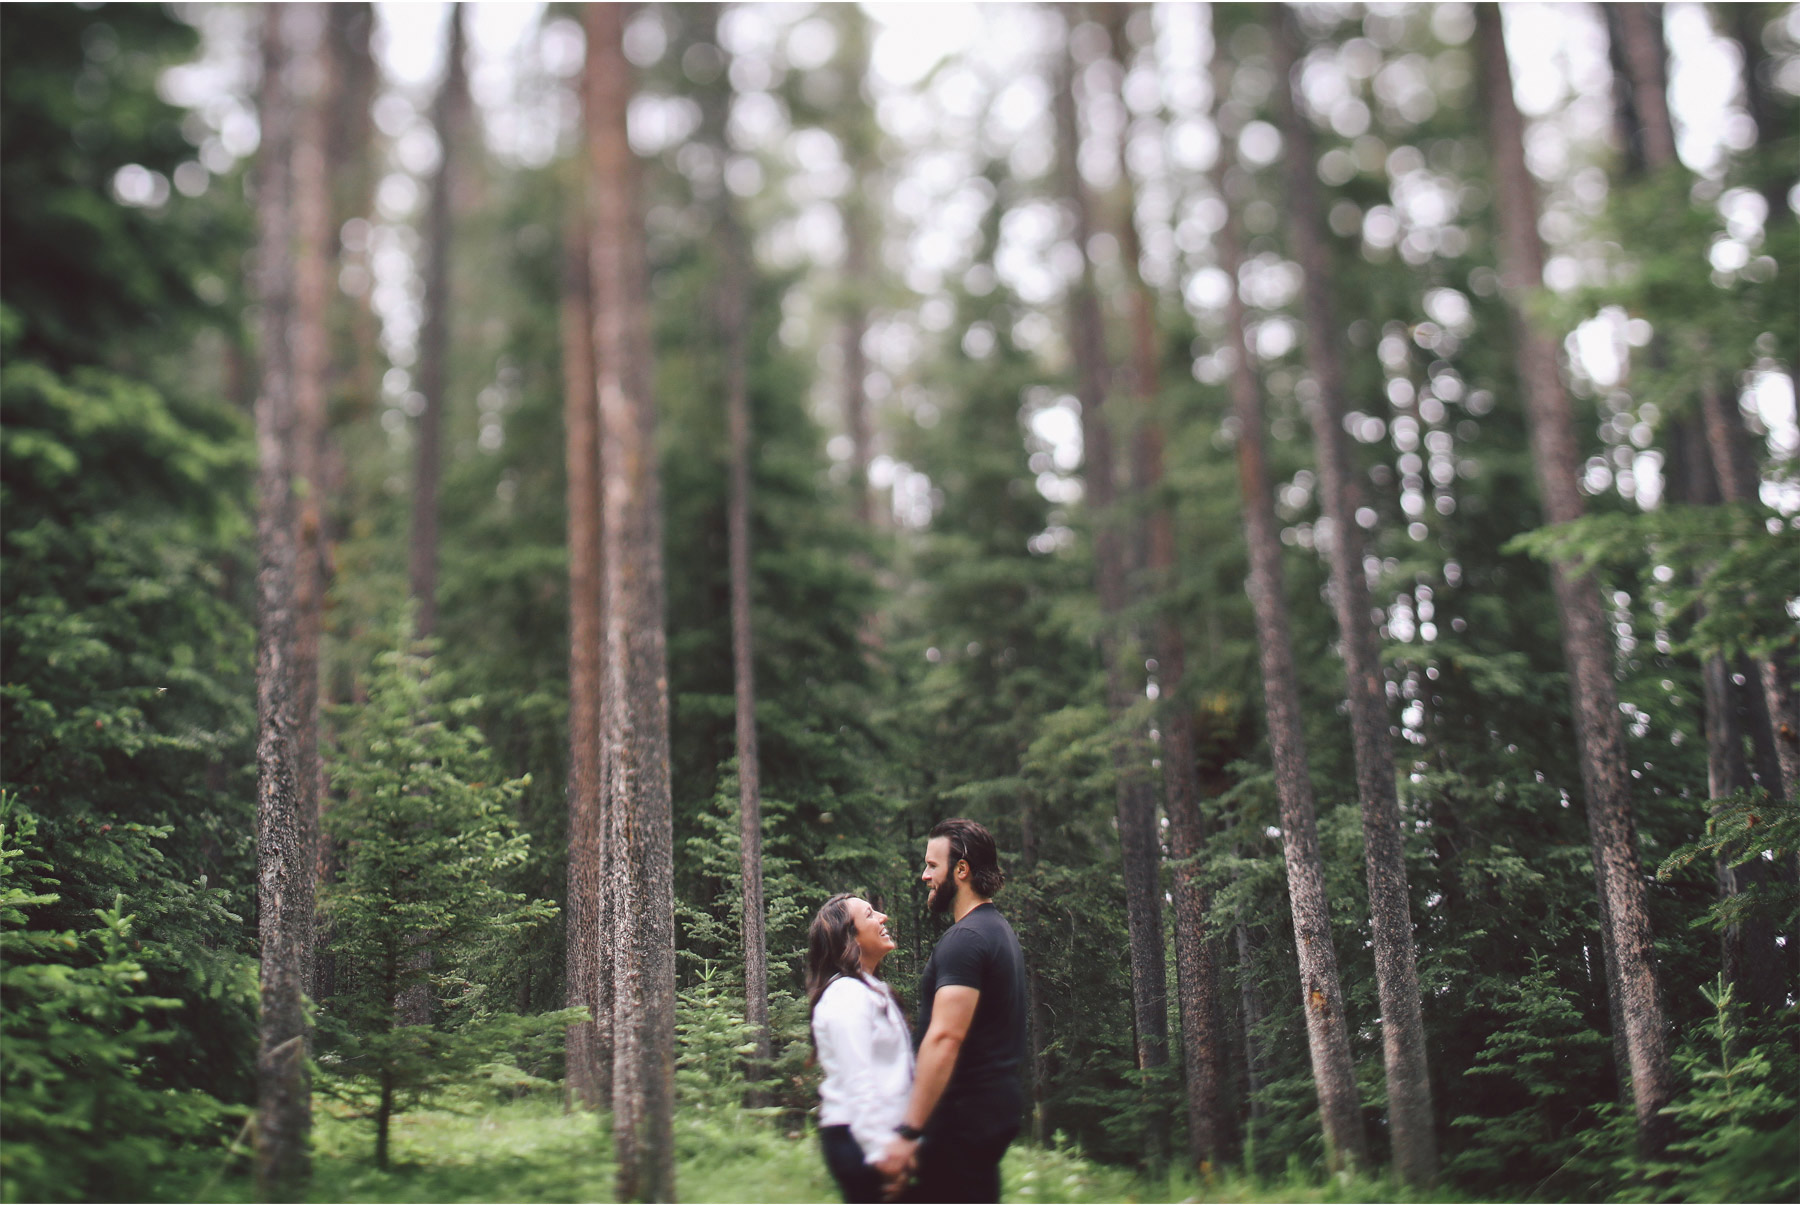 03-Banff-Canada-Engagement-Photography-by-Vick-Photography-Woods-Forest-Lizz-and-Brady.jpg